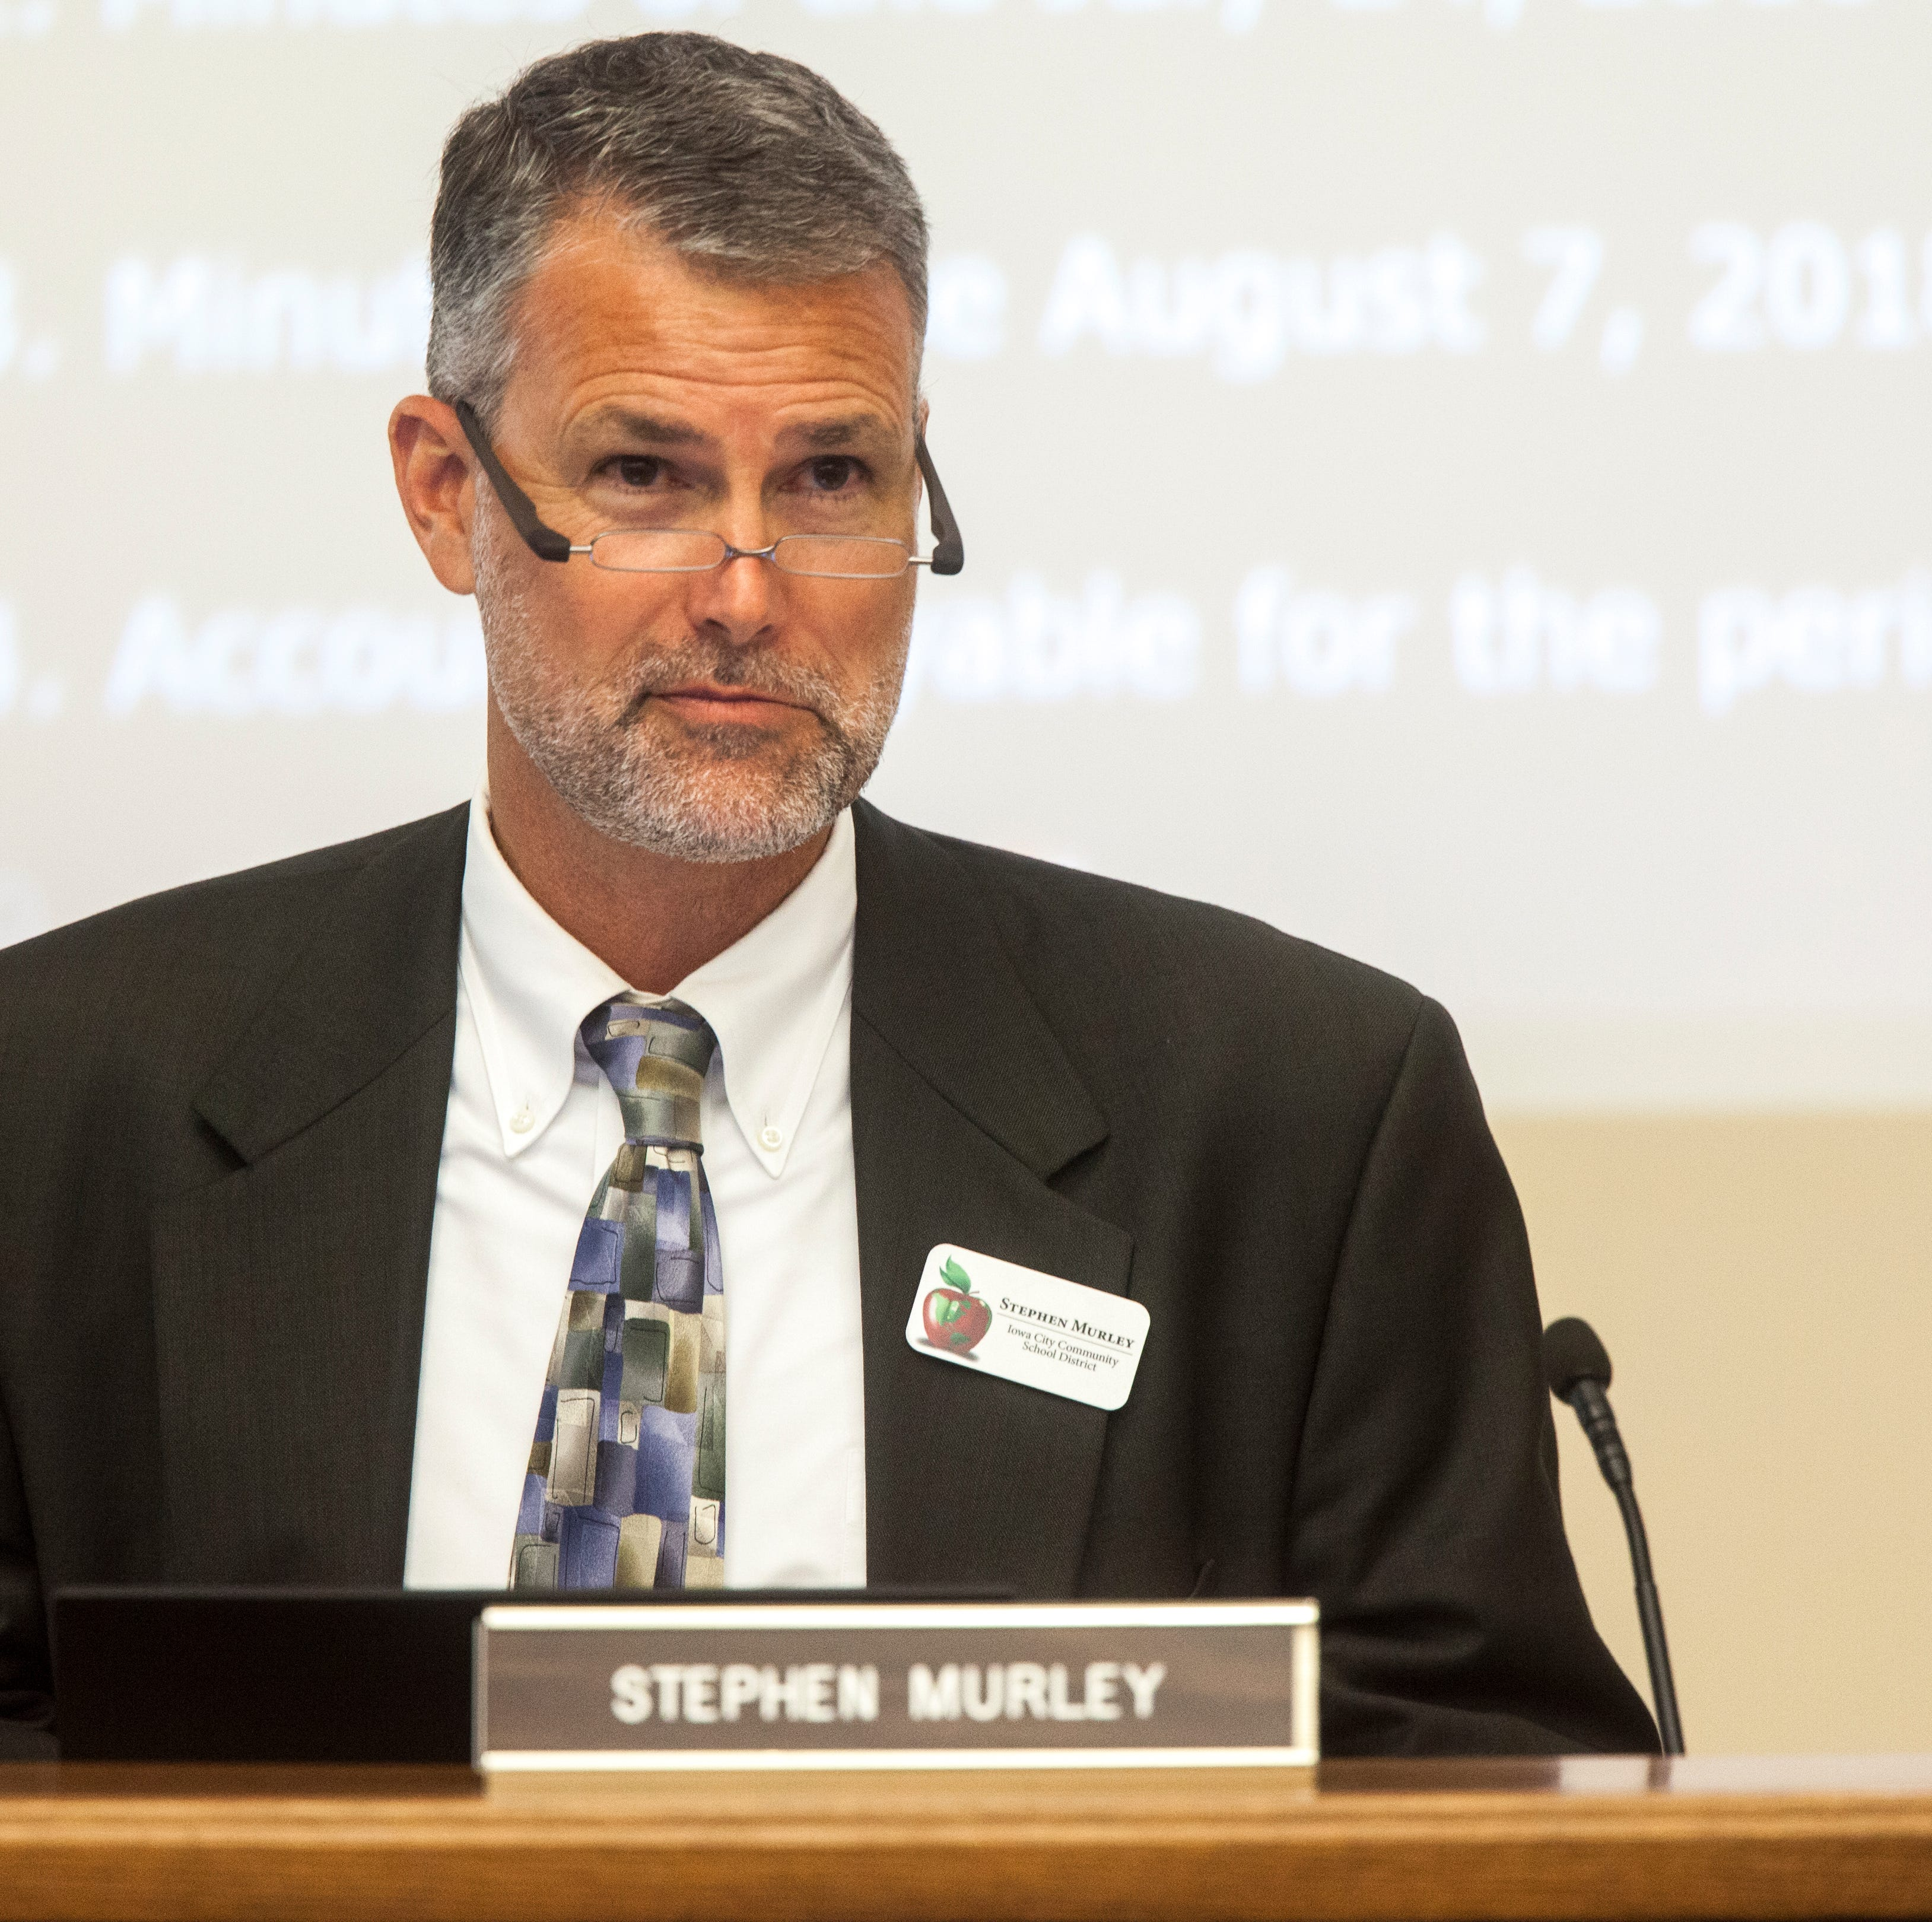 Iowa City school board approves three more years with superintendent Murley's but no raise